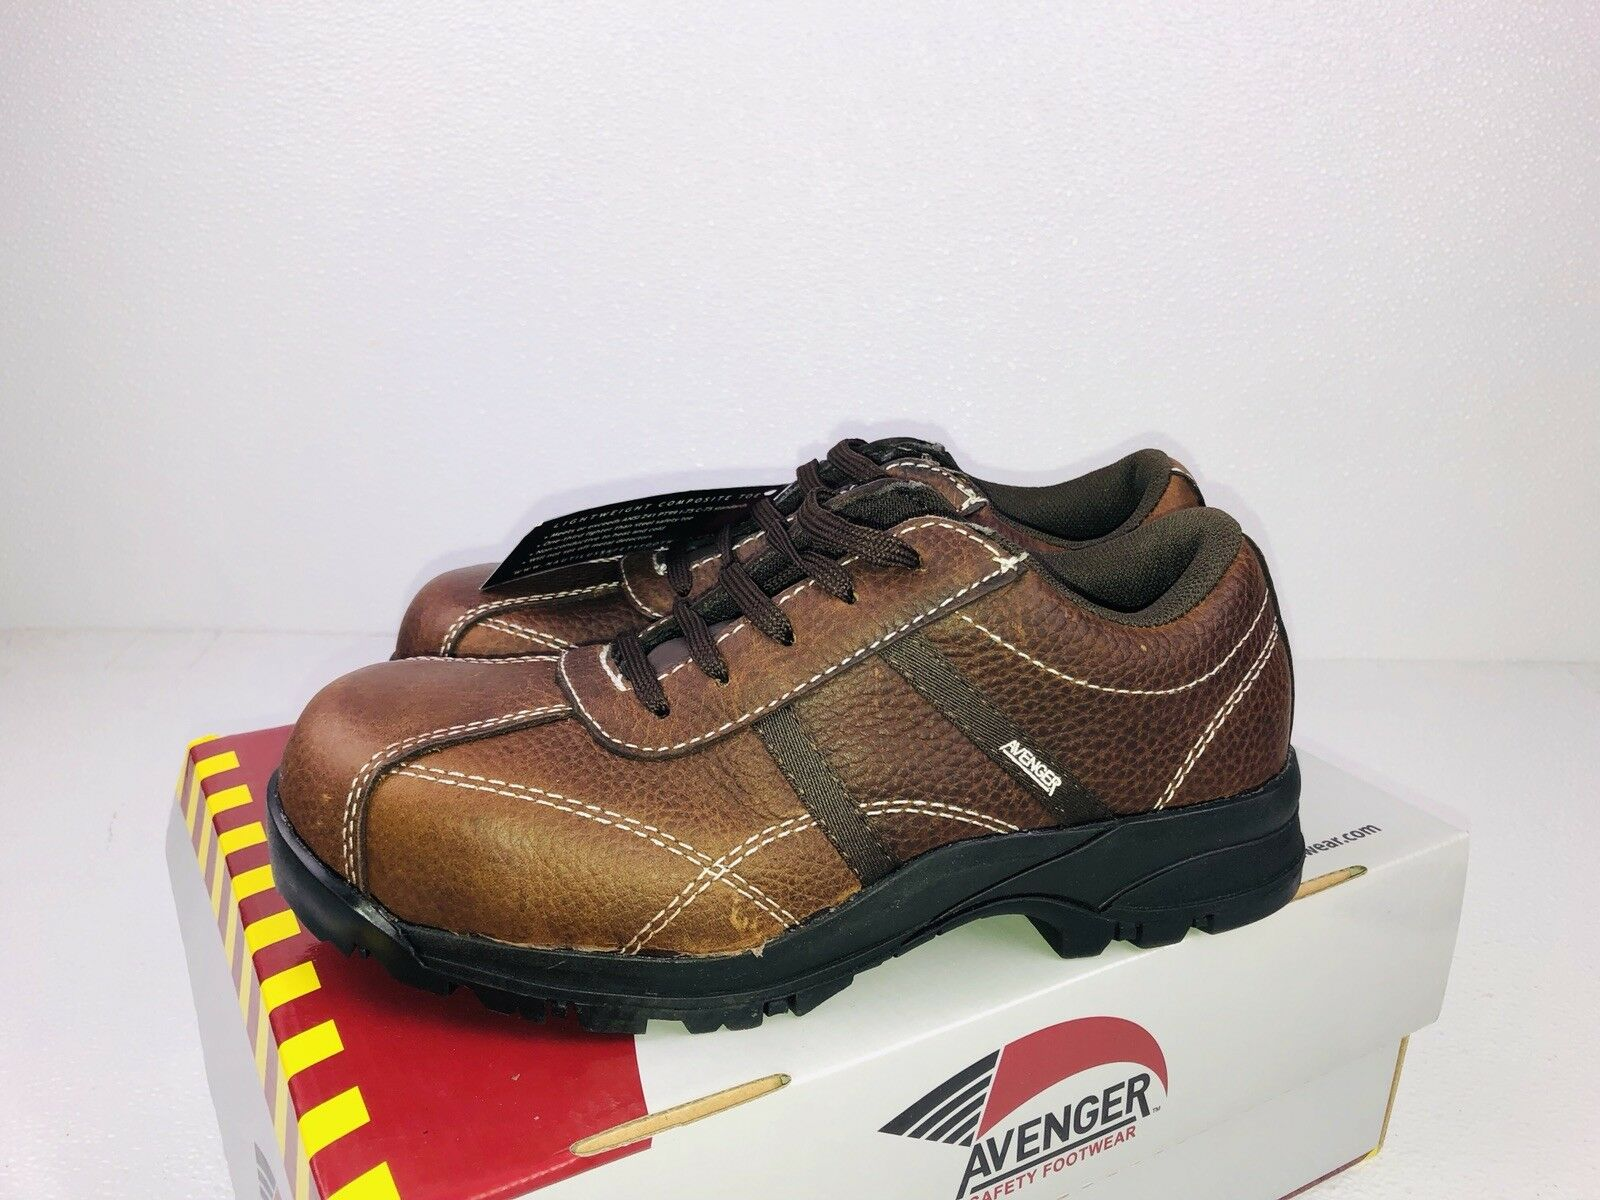 Women's Avenger Safety Footwear EH Composite Toe Leather shoes 7